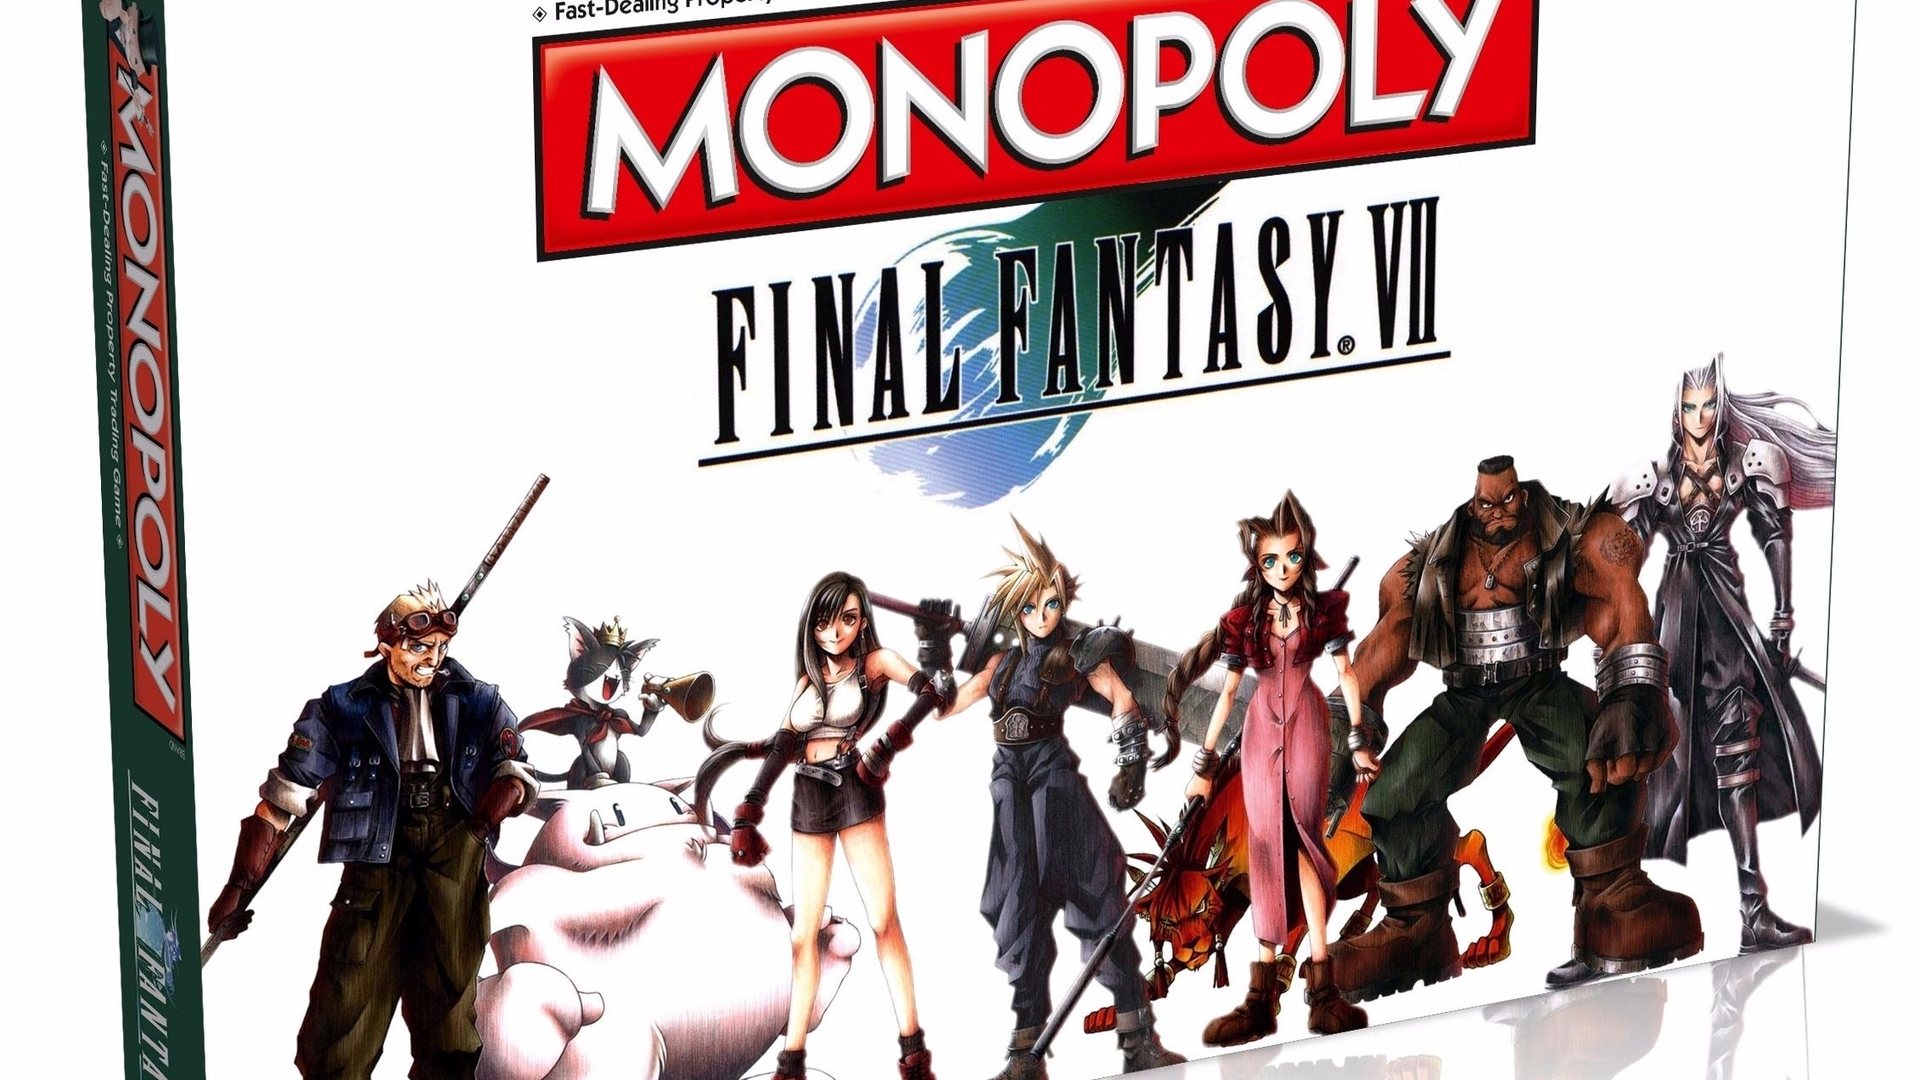 Final Fantasy 7 Monopoly is real and it's due out in 2017